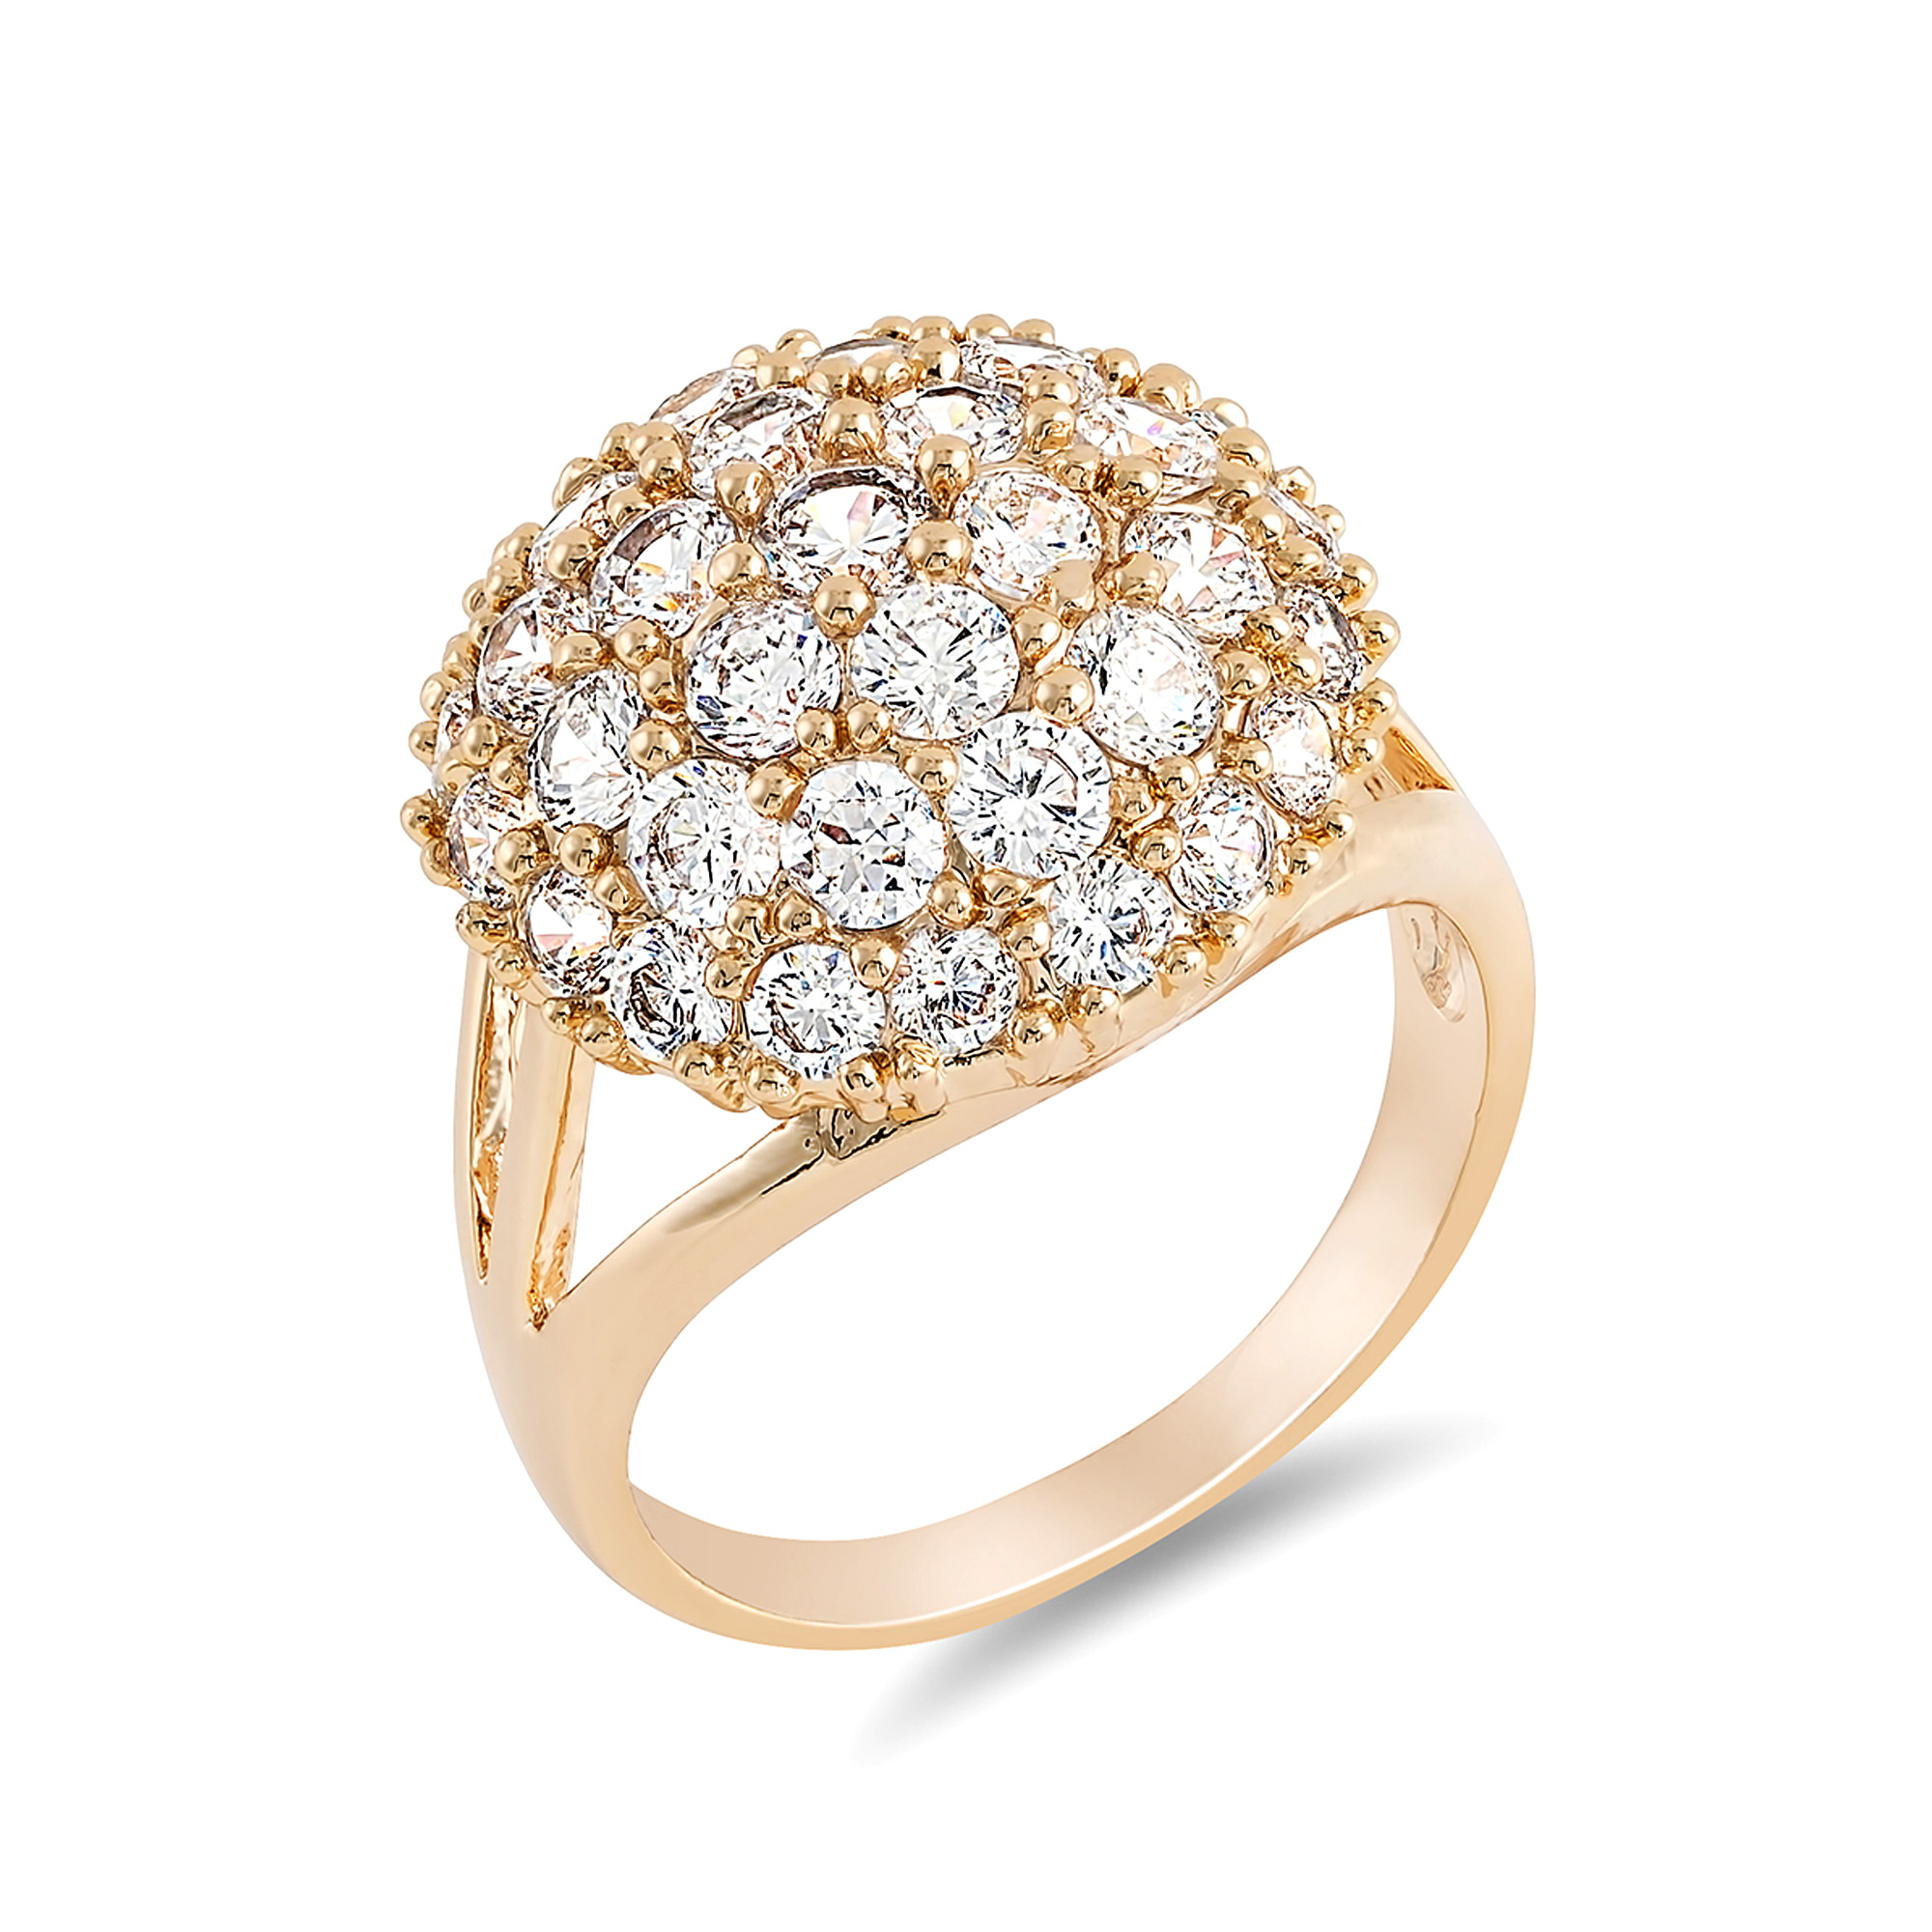 20pc Rose Gold Plated Cluster Round Clear Crystal Ring Size Variations UK (4 sizes, 5pcs for each size)/GCJ041